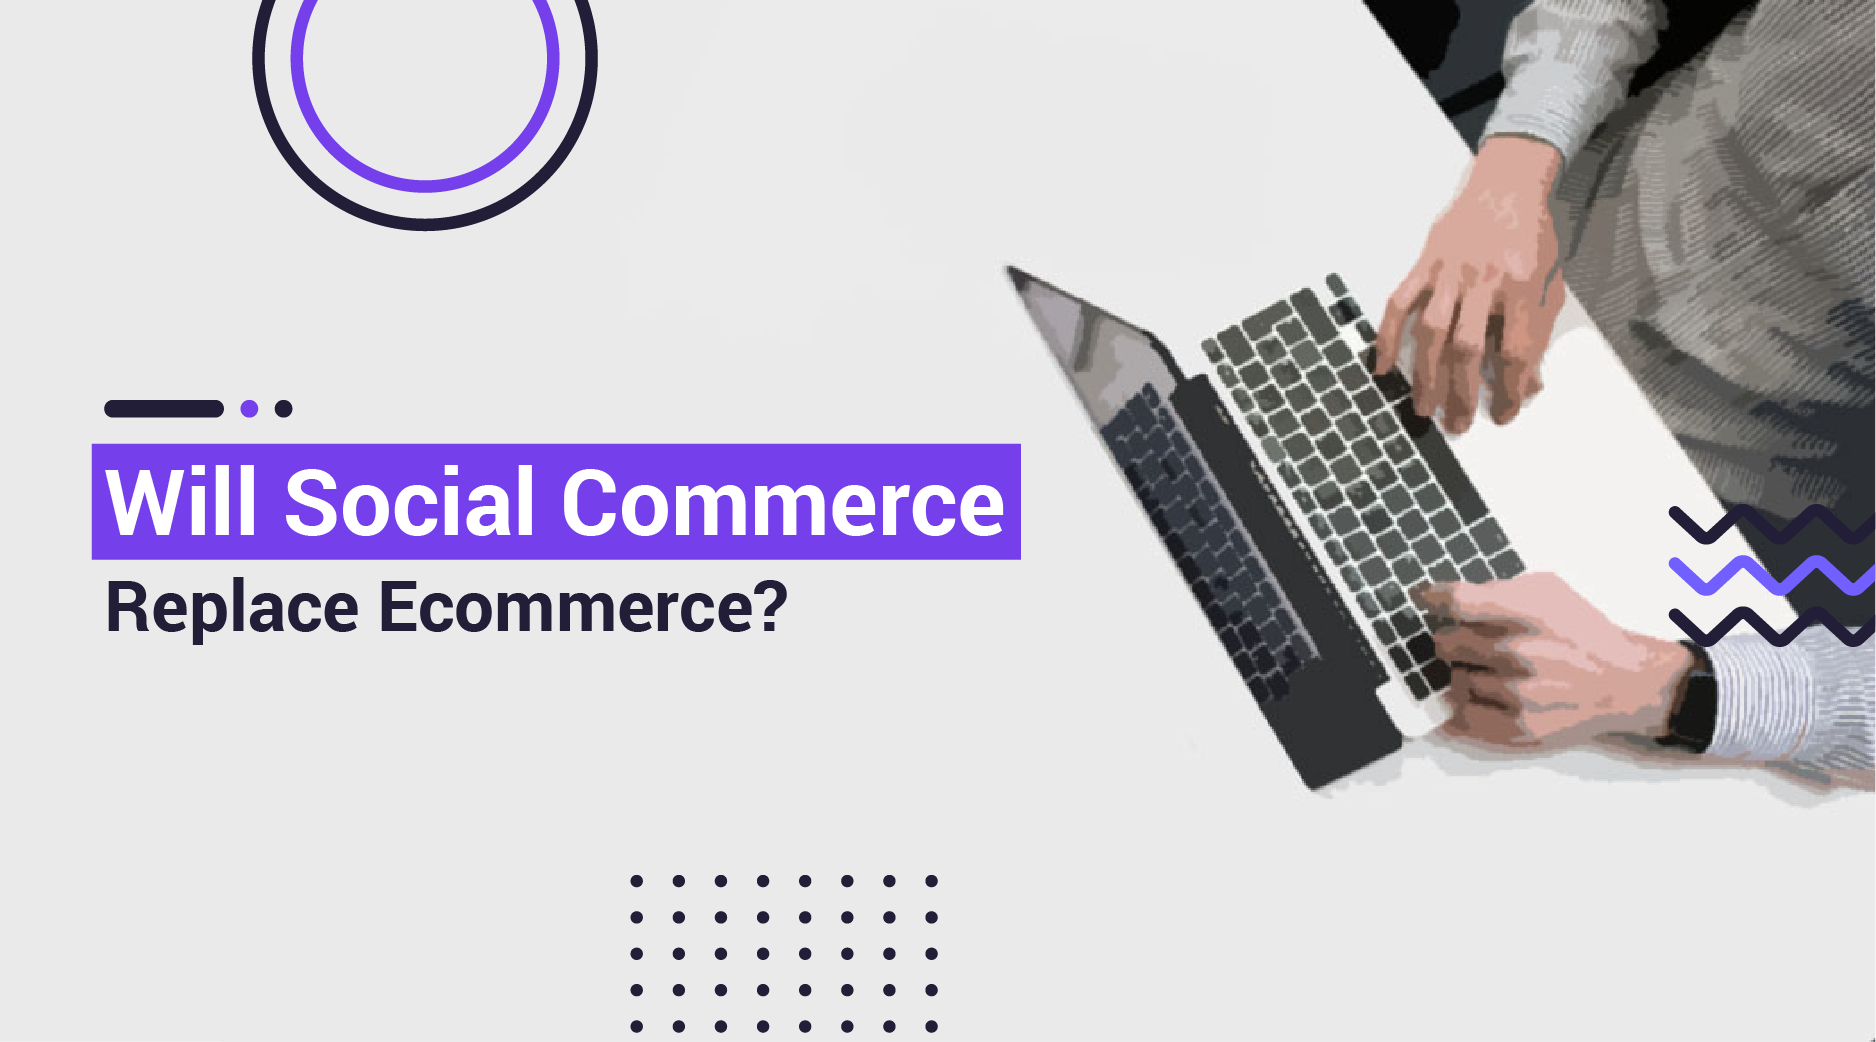 Will Social Commerce Replace Ecommerce?